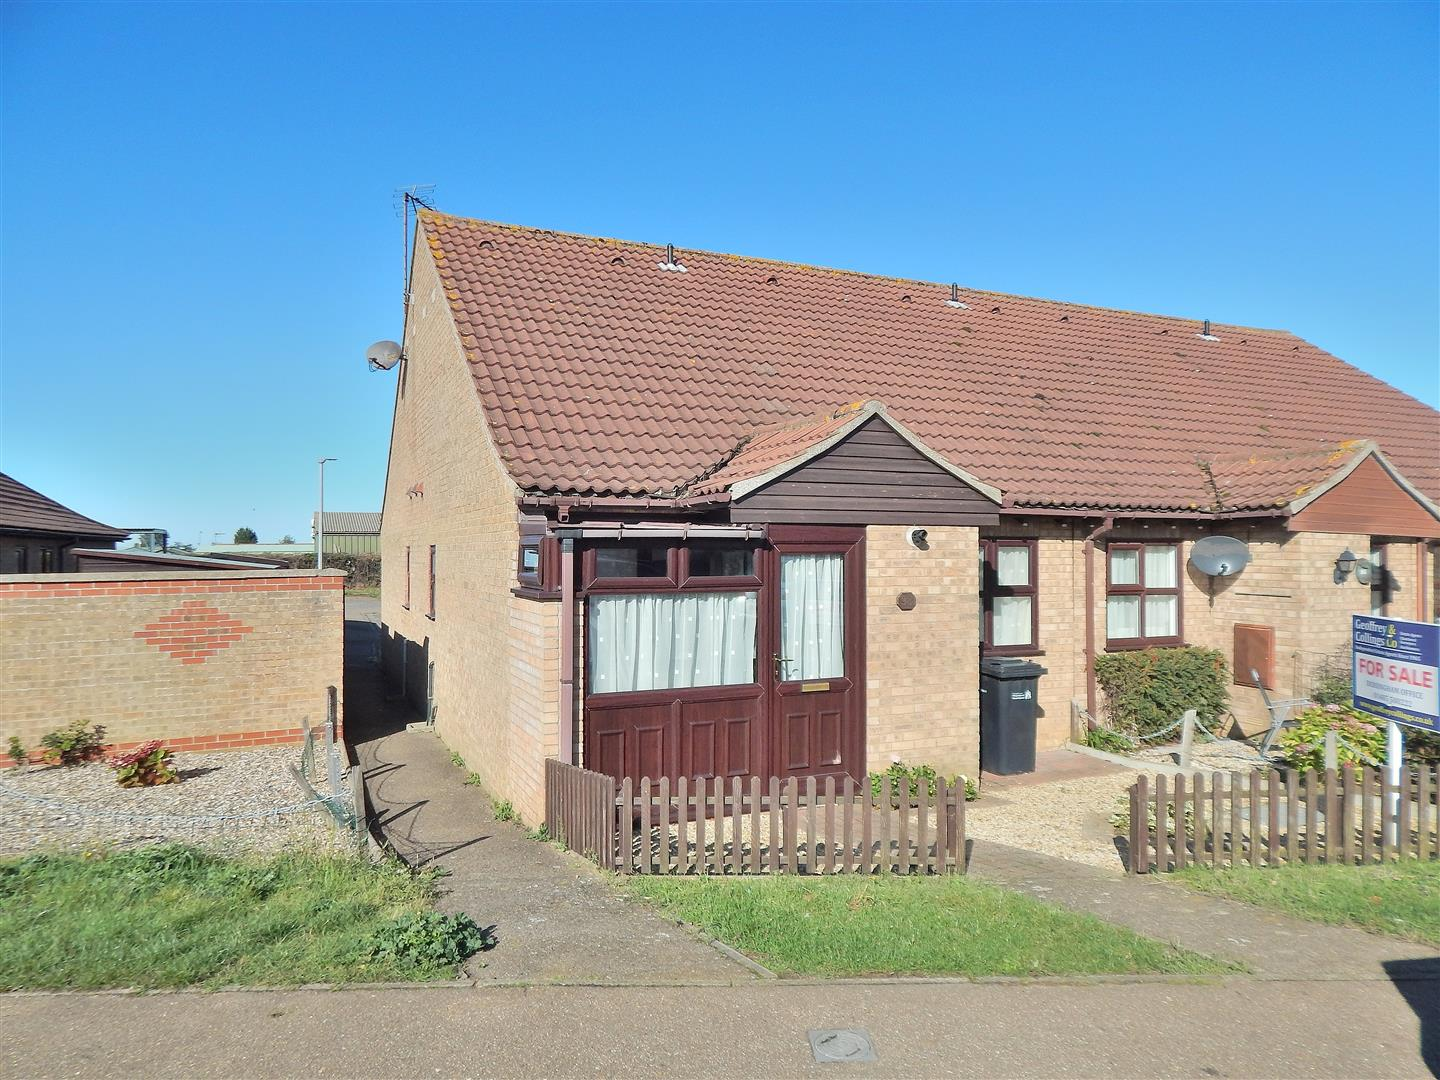 1 bed terraced bungalow for sale in King's Lynn, PE31 7SZ - Property Image 1